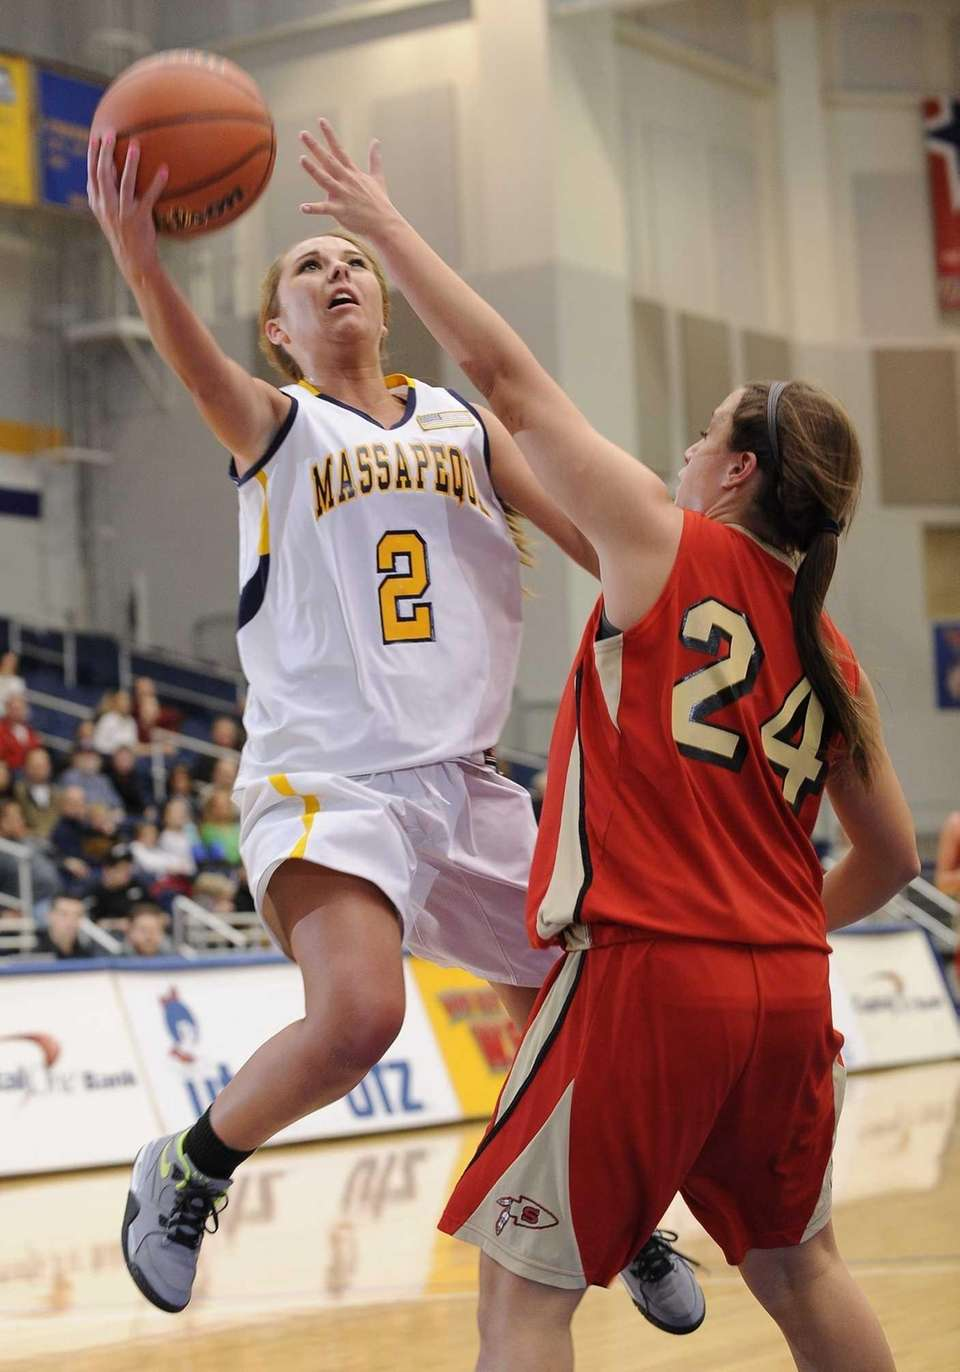 Massapequa's Danielle Doherty sinks a layup as Sachem